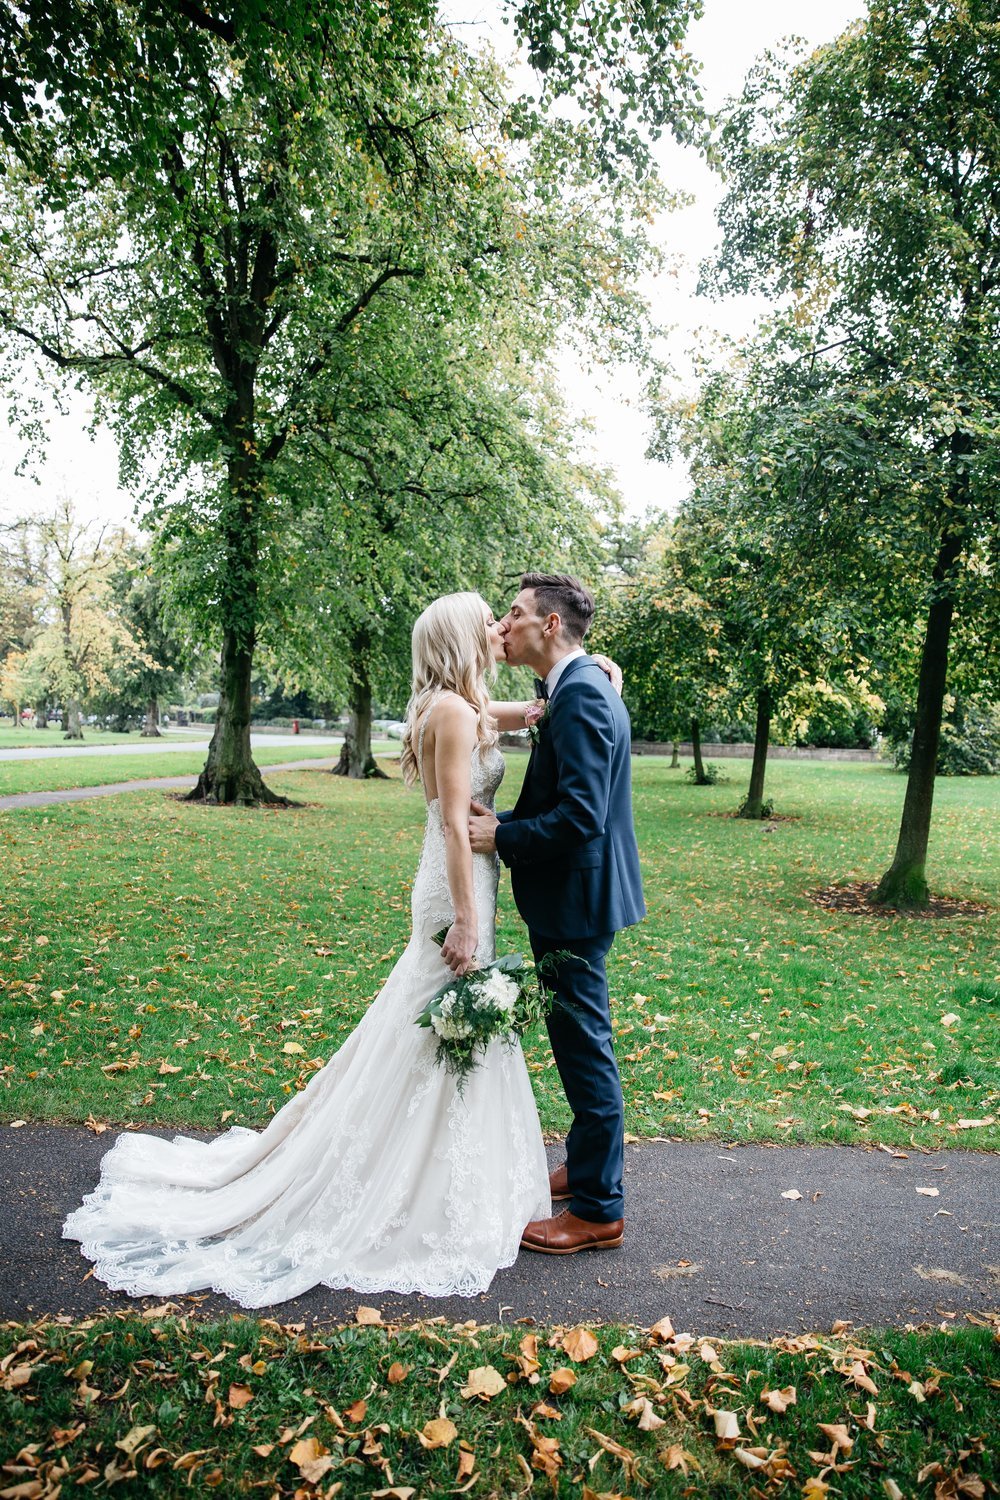 Amanda & Ryan Hotel Du Vin Harrogate Wedding Photographer